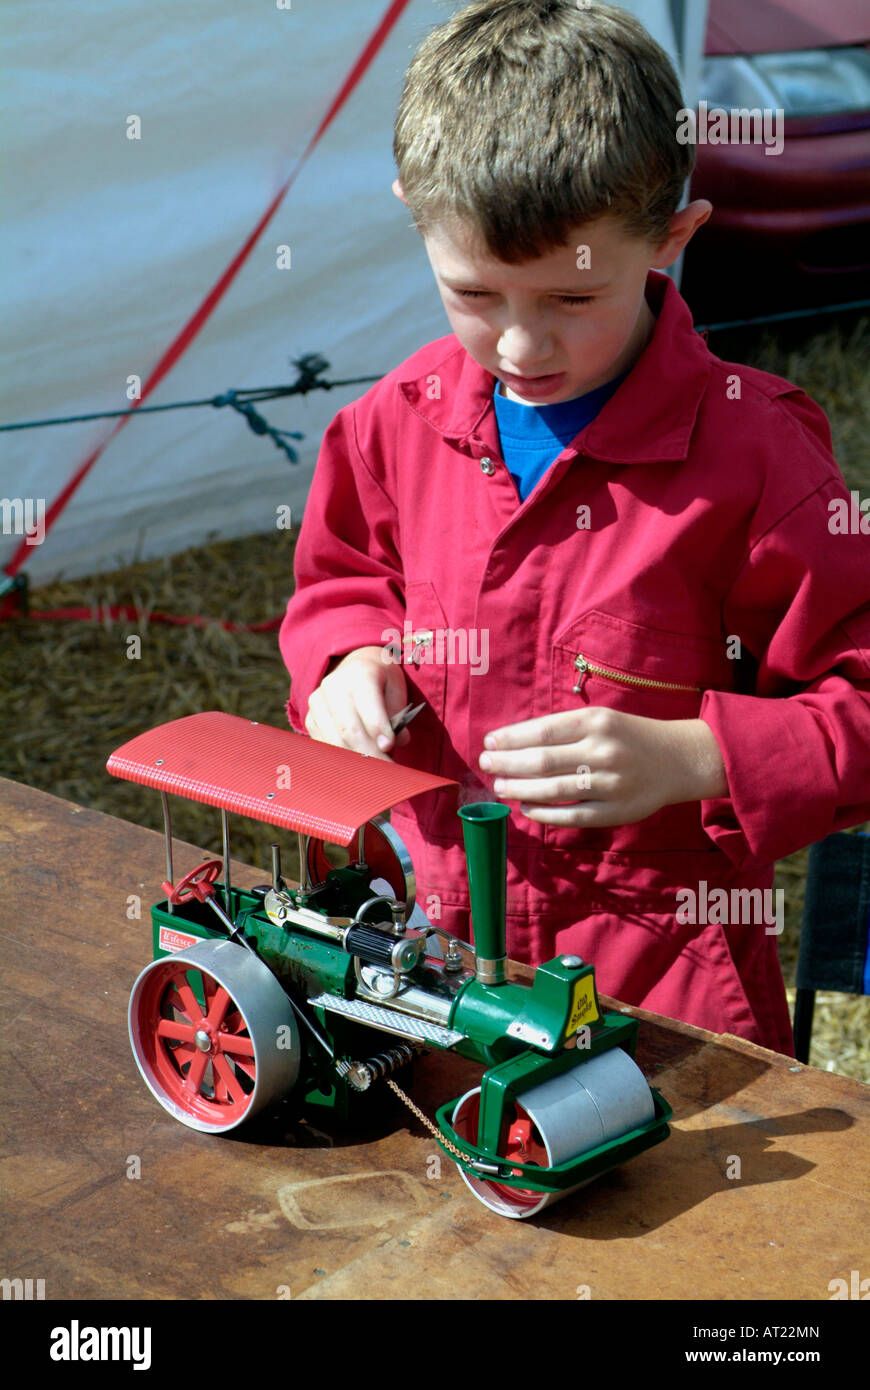 young boy with overalls and toy steam roller - Stock Image